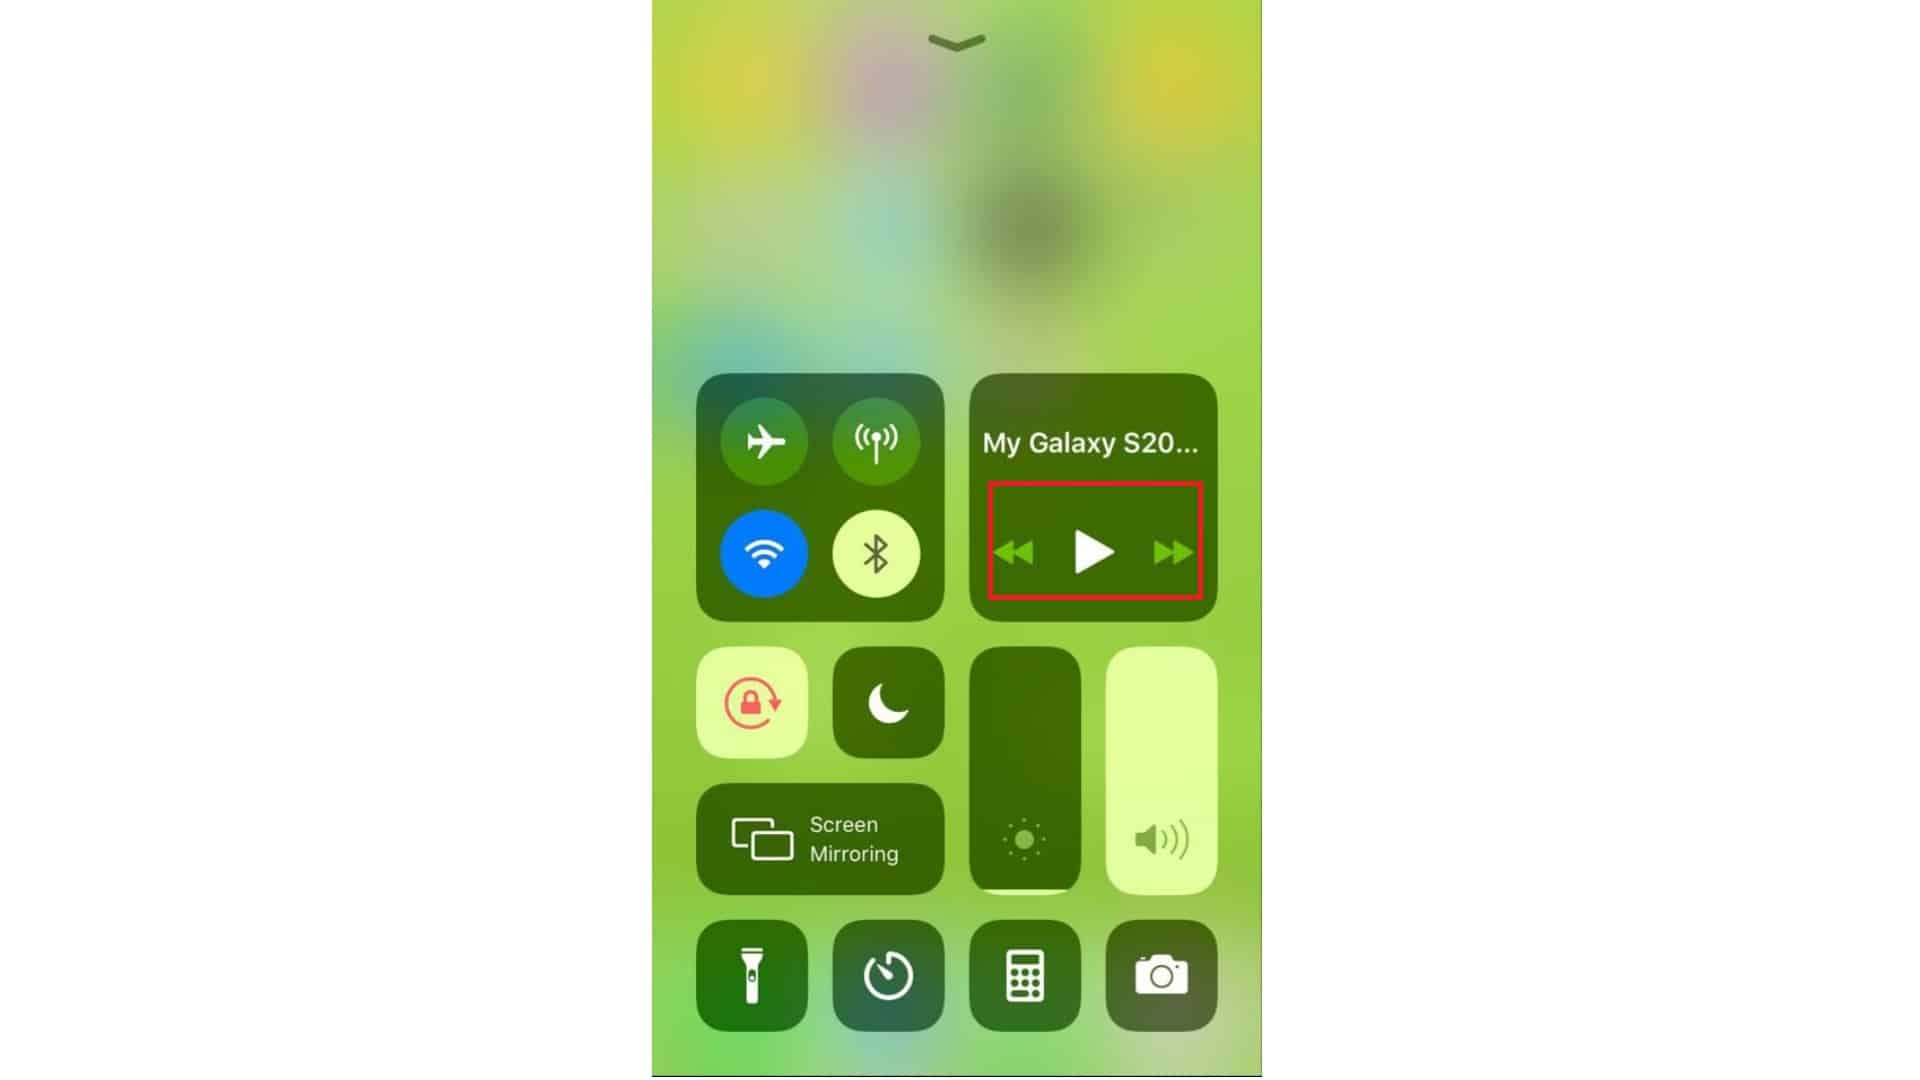 play-youtube-videos-in-the-background-on-ios-guide-2020